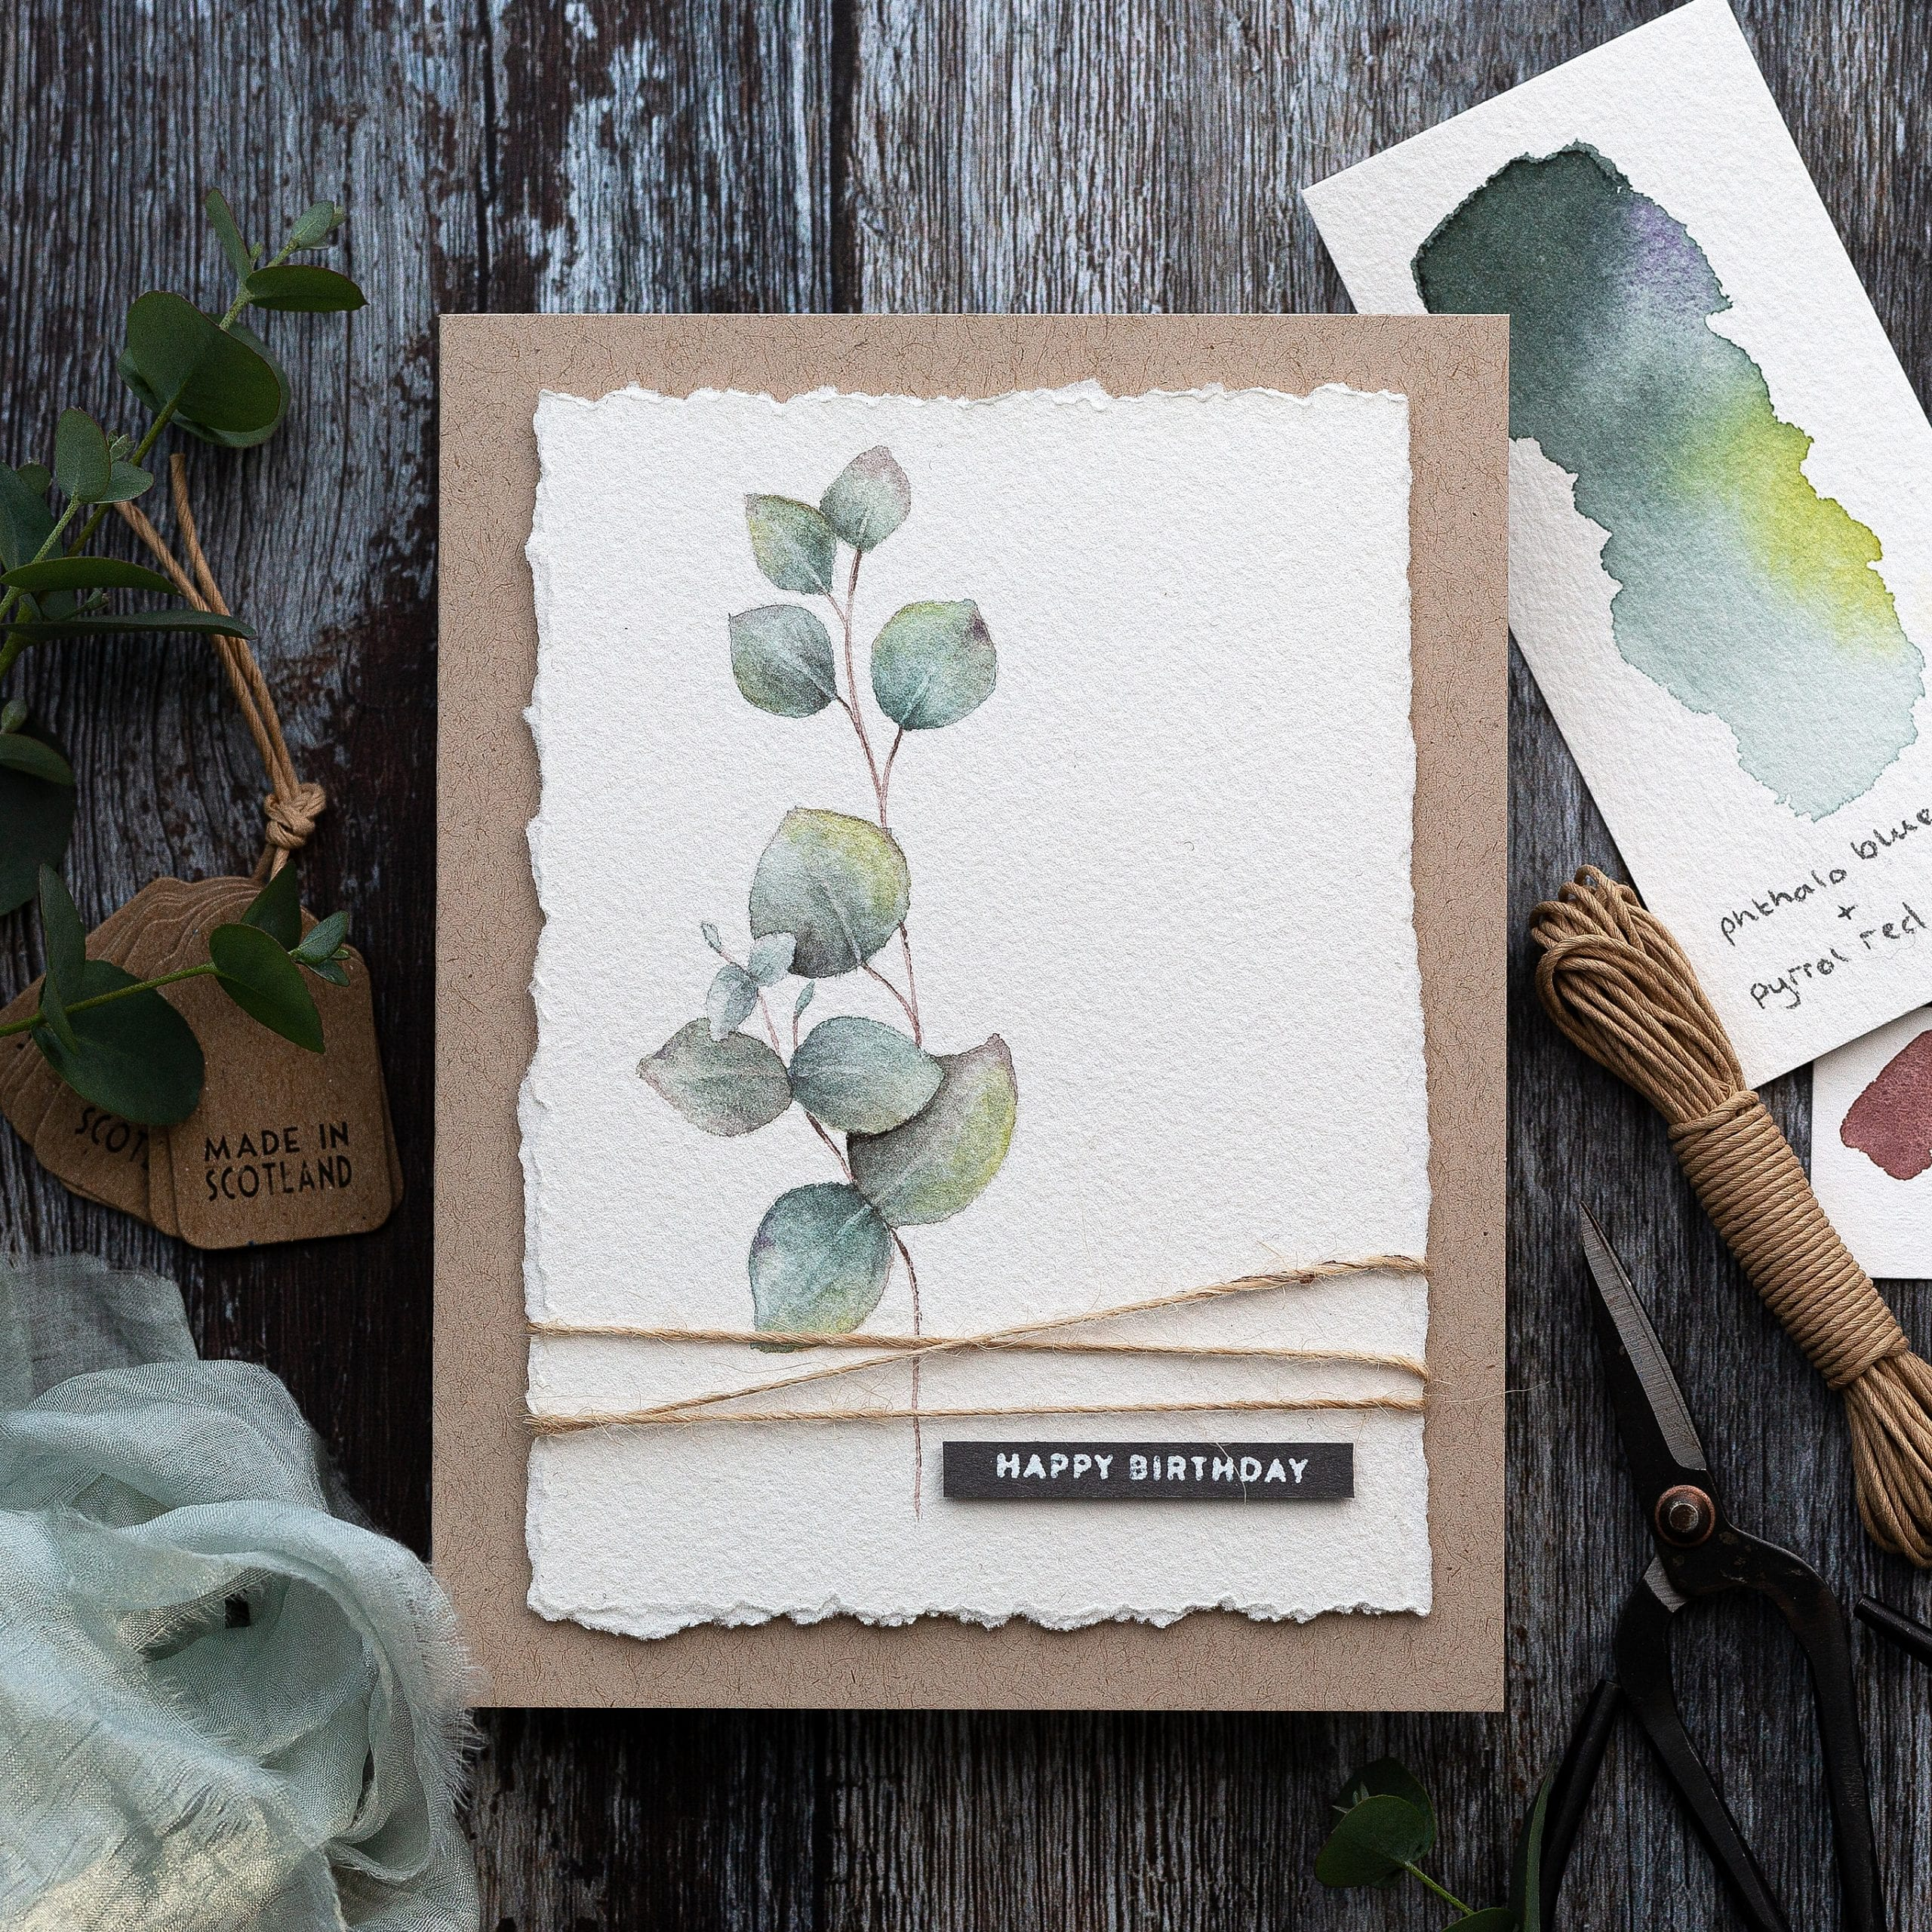 Simple masculine watercoloured botanical handmade birthday card by Debby Hughes using supplies from Simon Says Stamp #handmadecard #homemade #watercolor #malebirthday